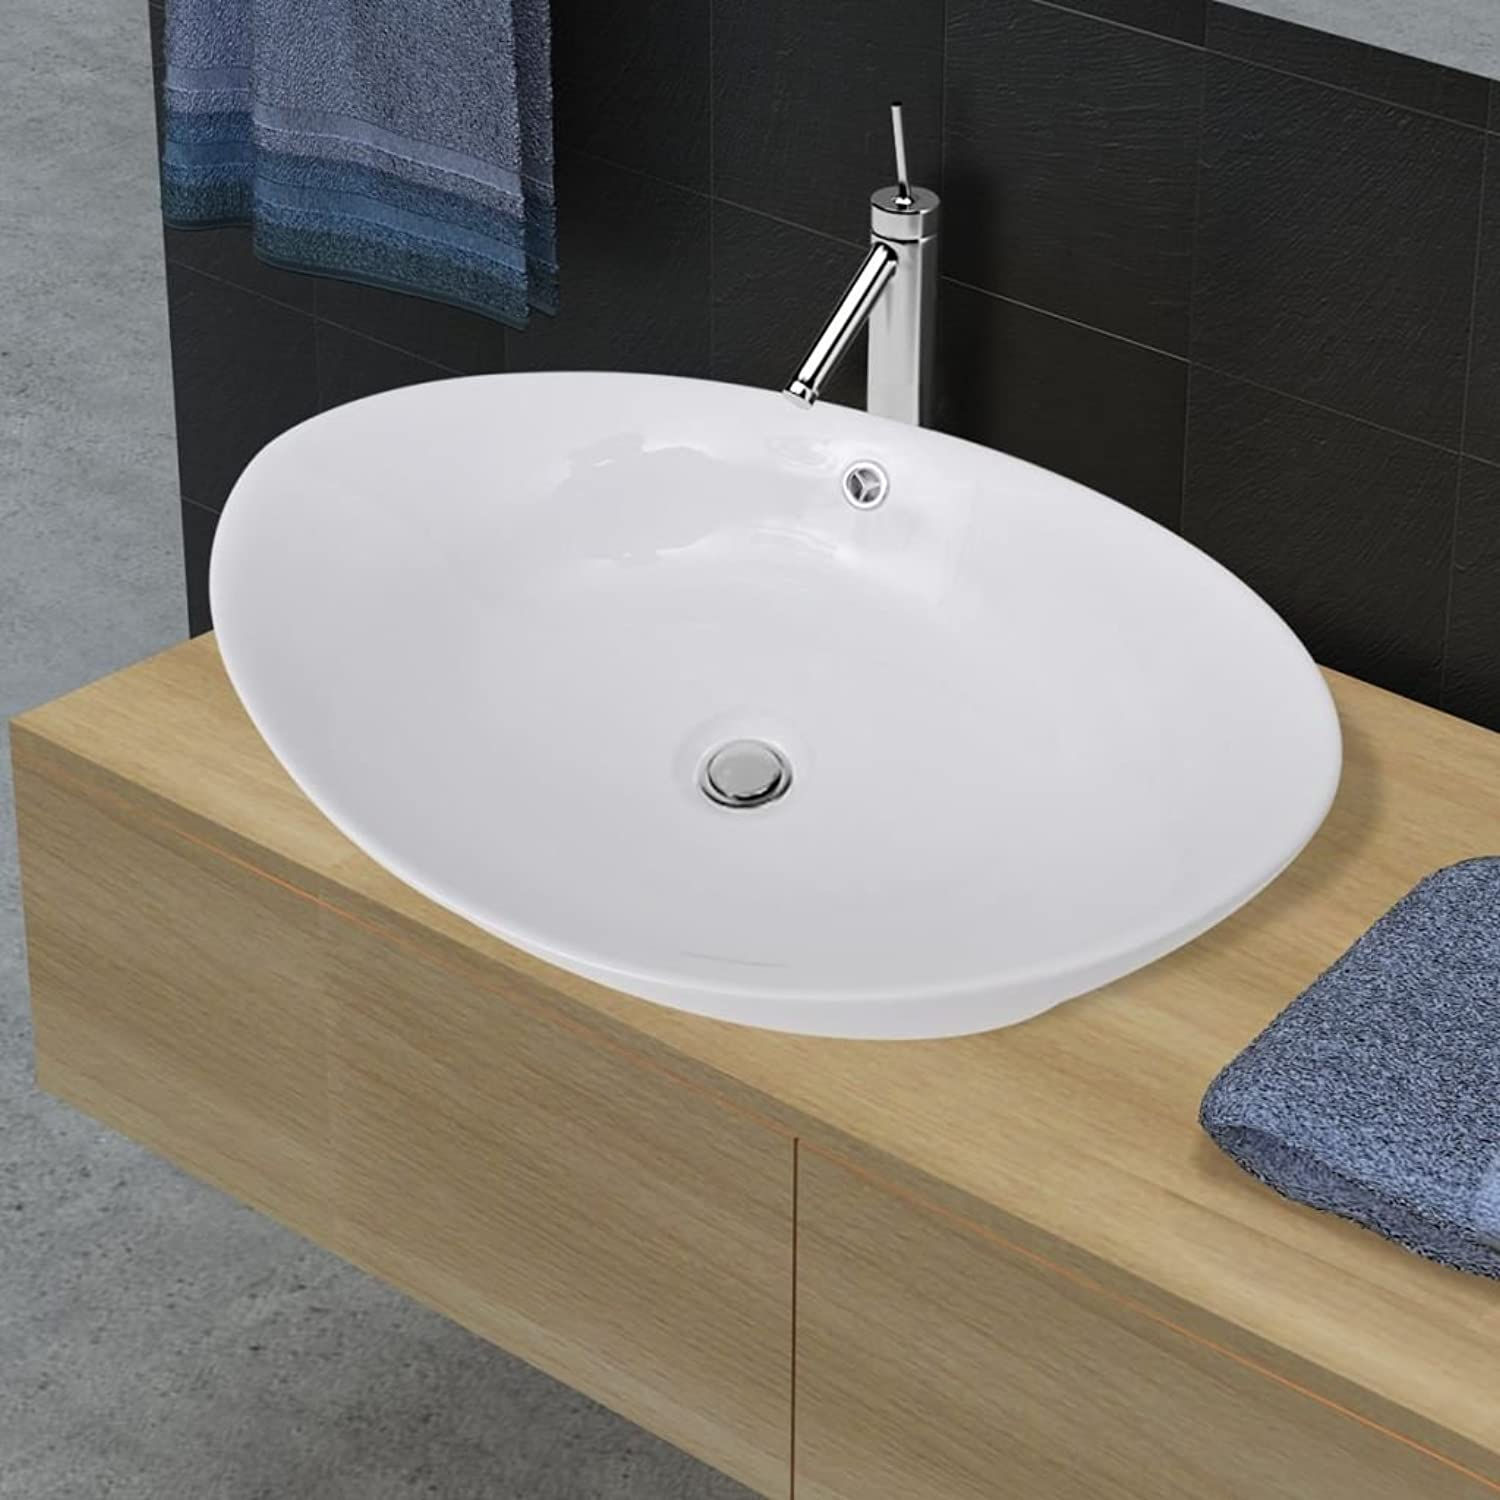 Oval Ceramic Basin Sink With Overflow 59?x 38.5?cm